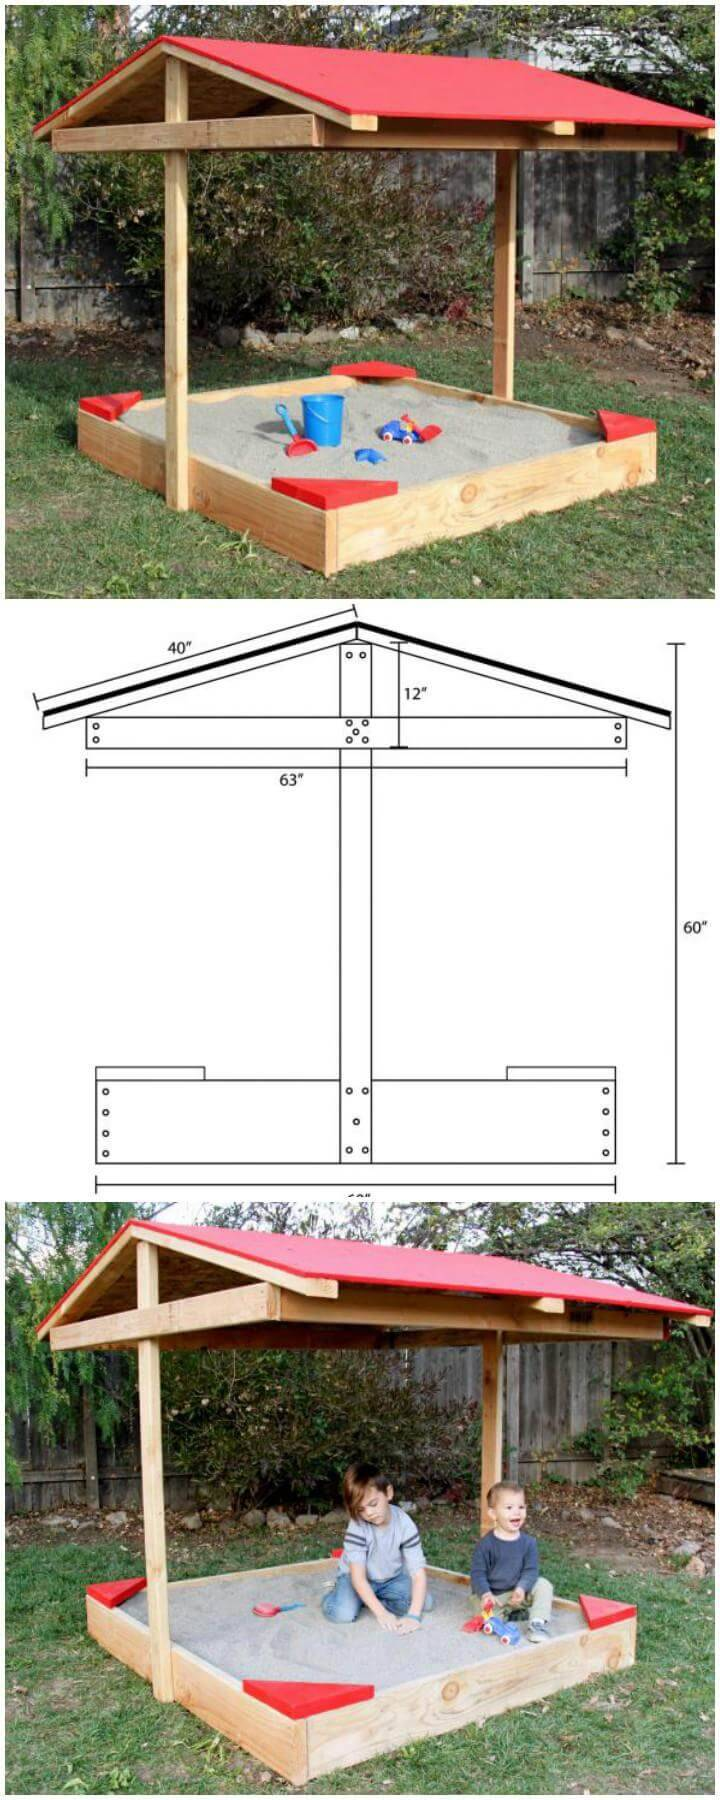 DIY Wooden Sandbox with Chevron Roof - Free Plans and Tutorial